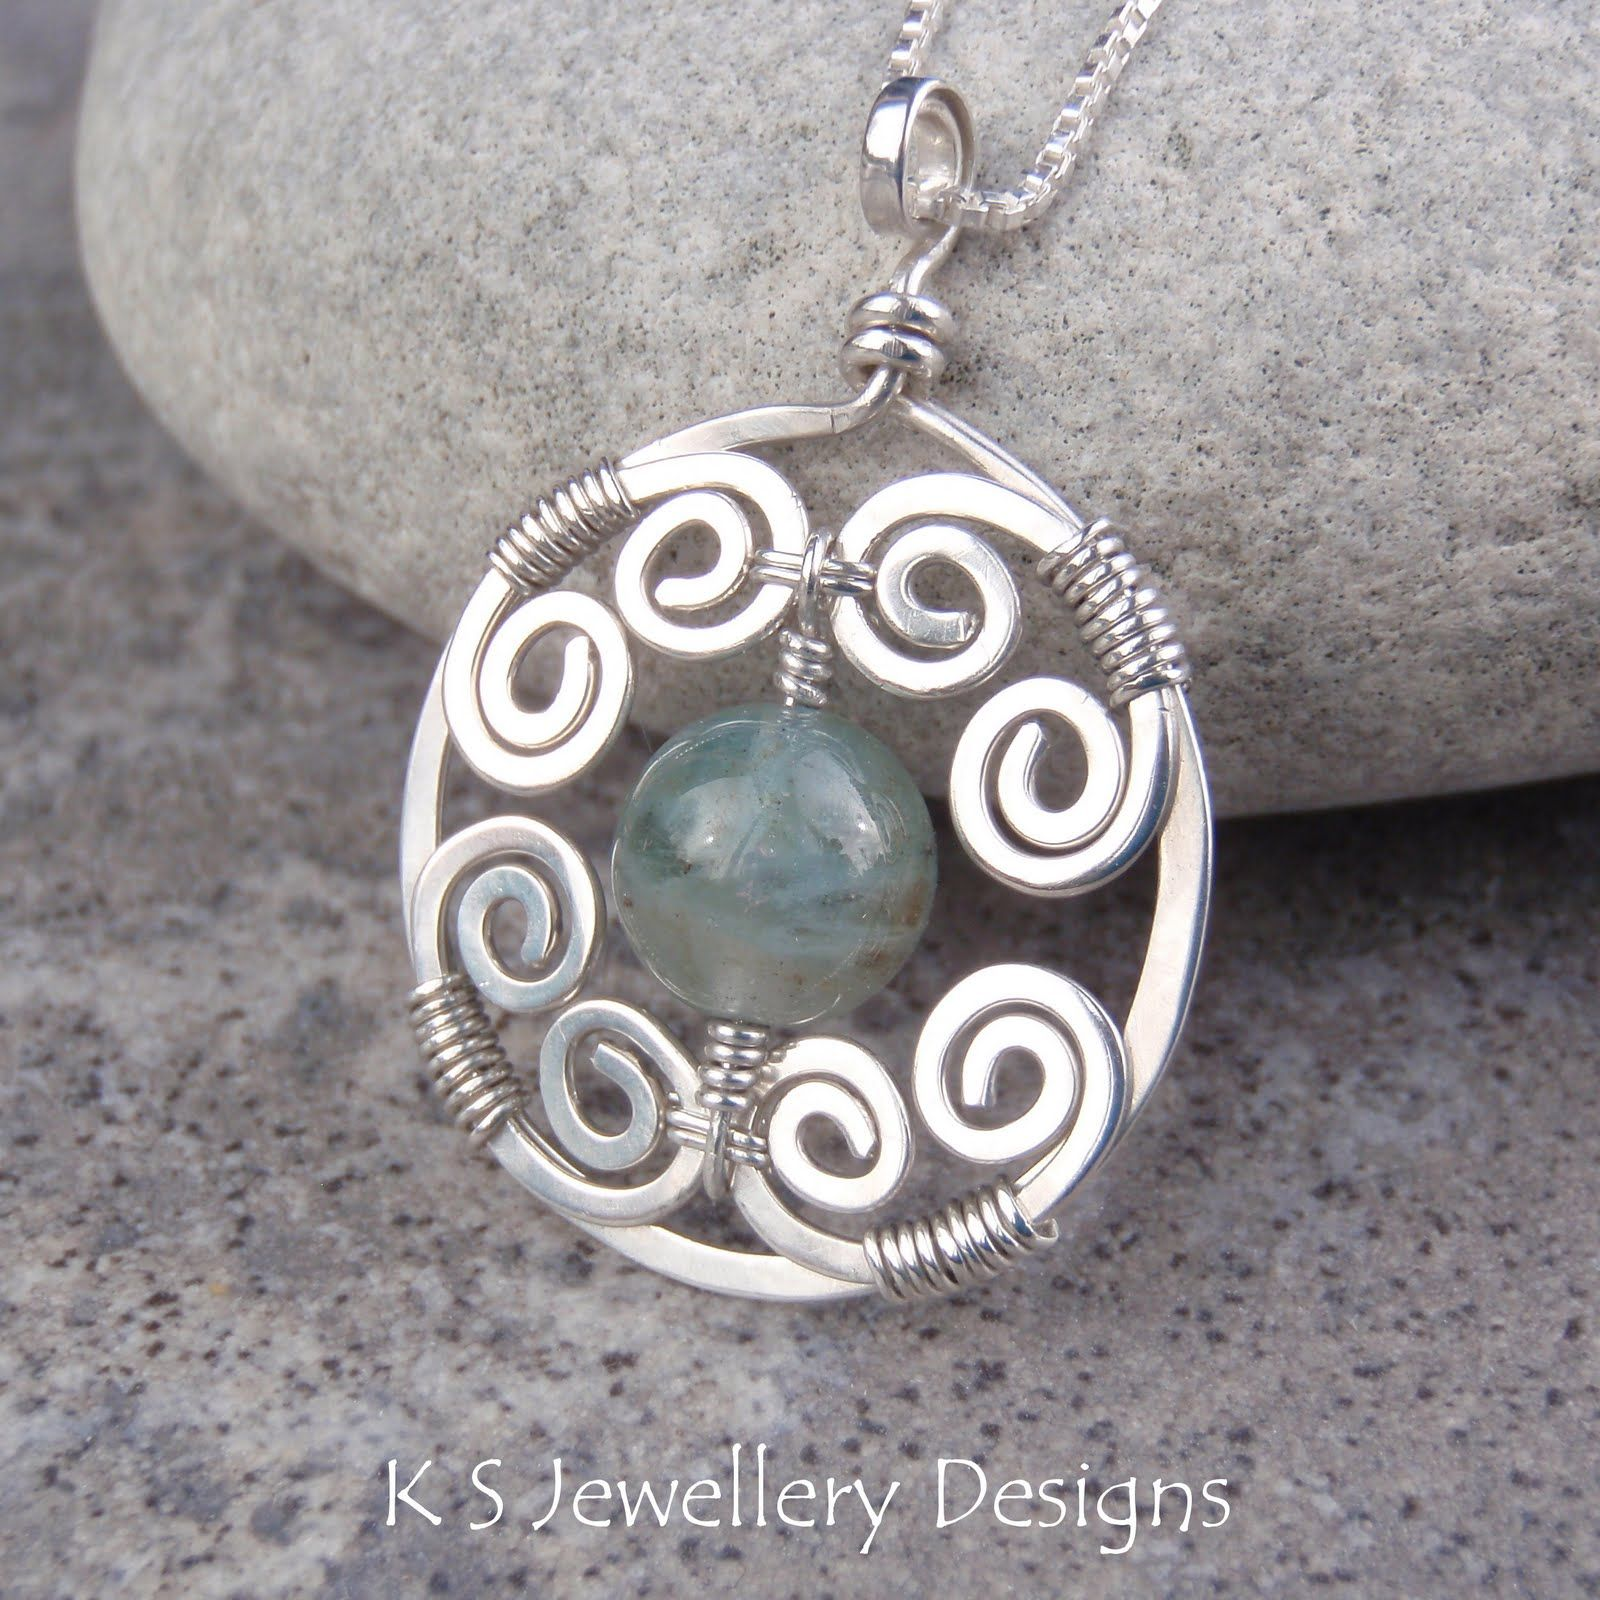 Handmade silver jewellery and tutorials - texture and shine ...